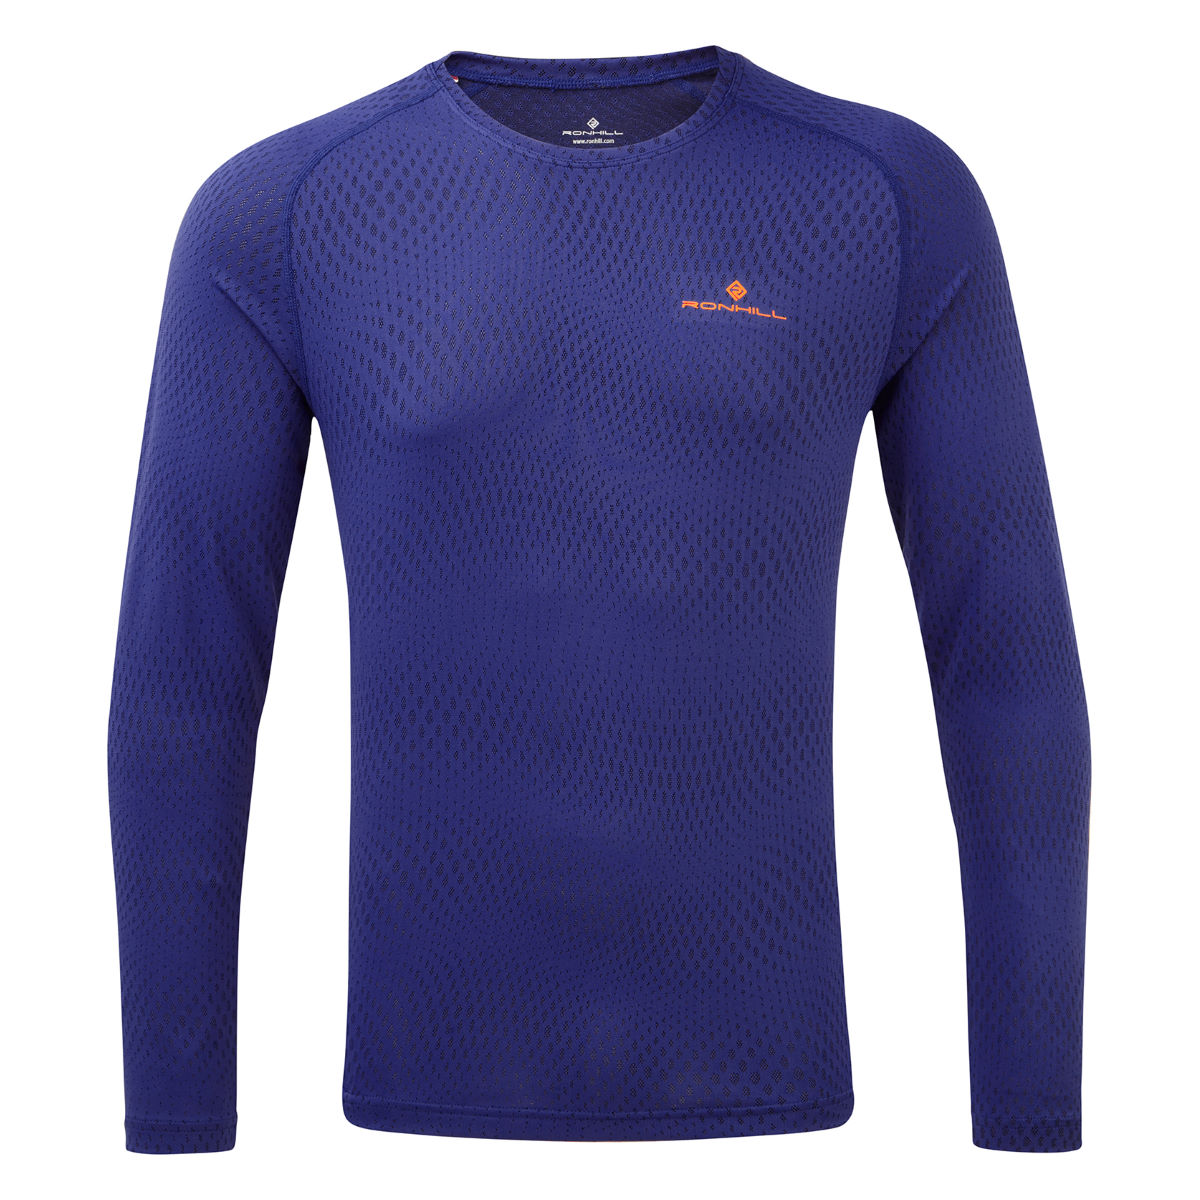 Ronhill Ronhill Stride L/S Tee   Long Sleeve Running Tops